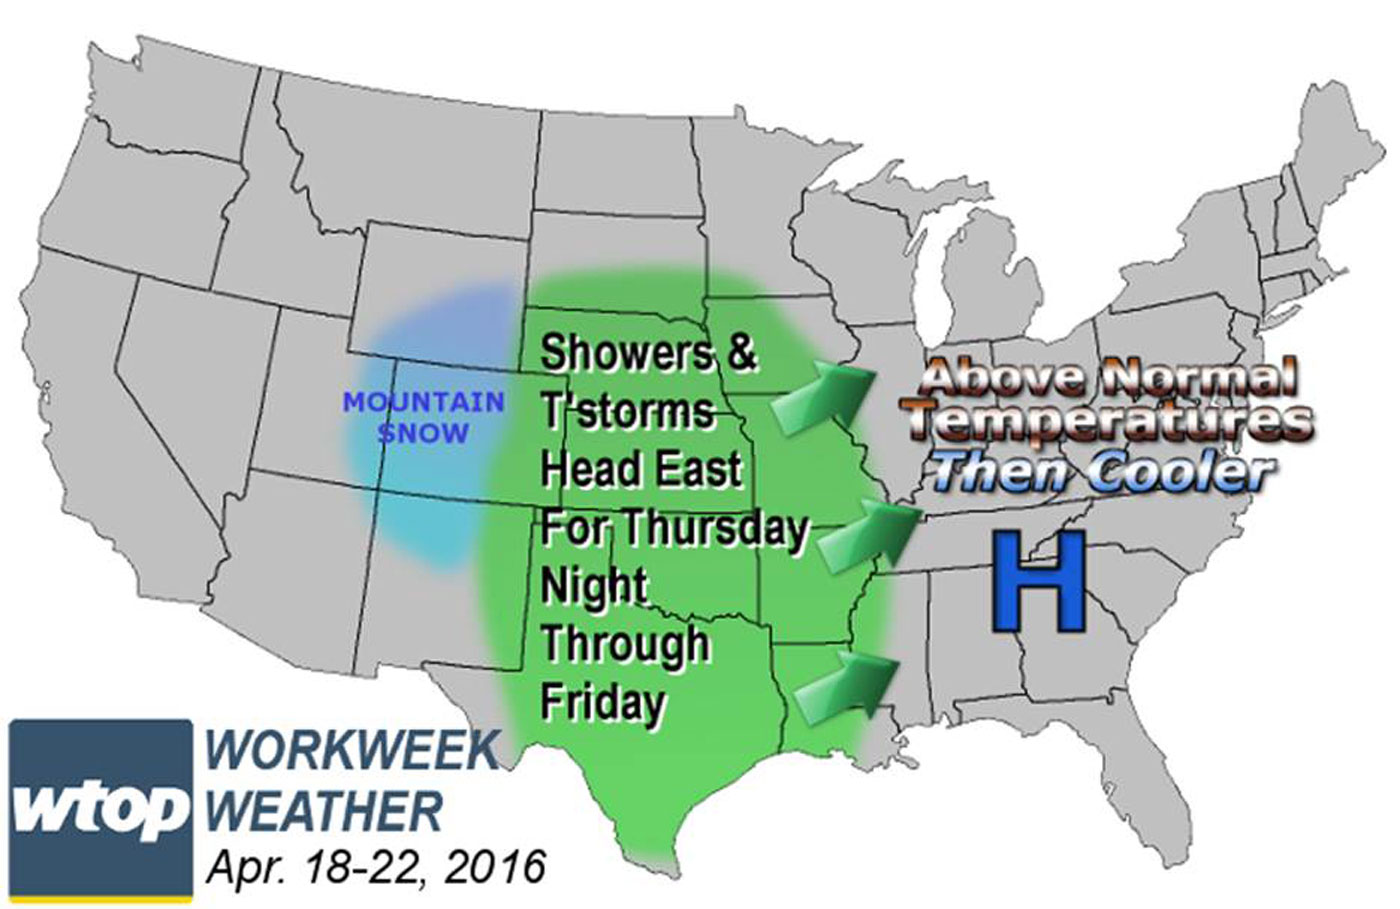 Quiet, pleasant weather for most of workweek